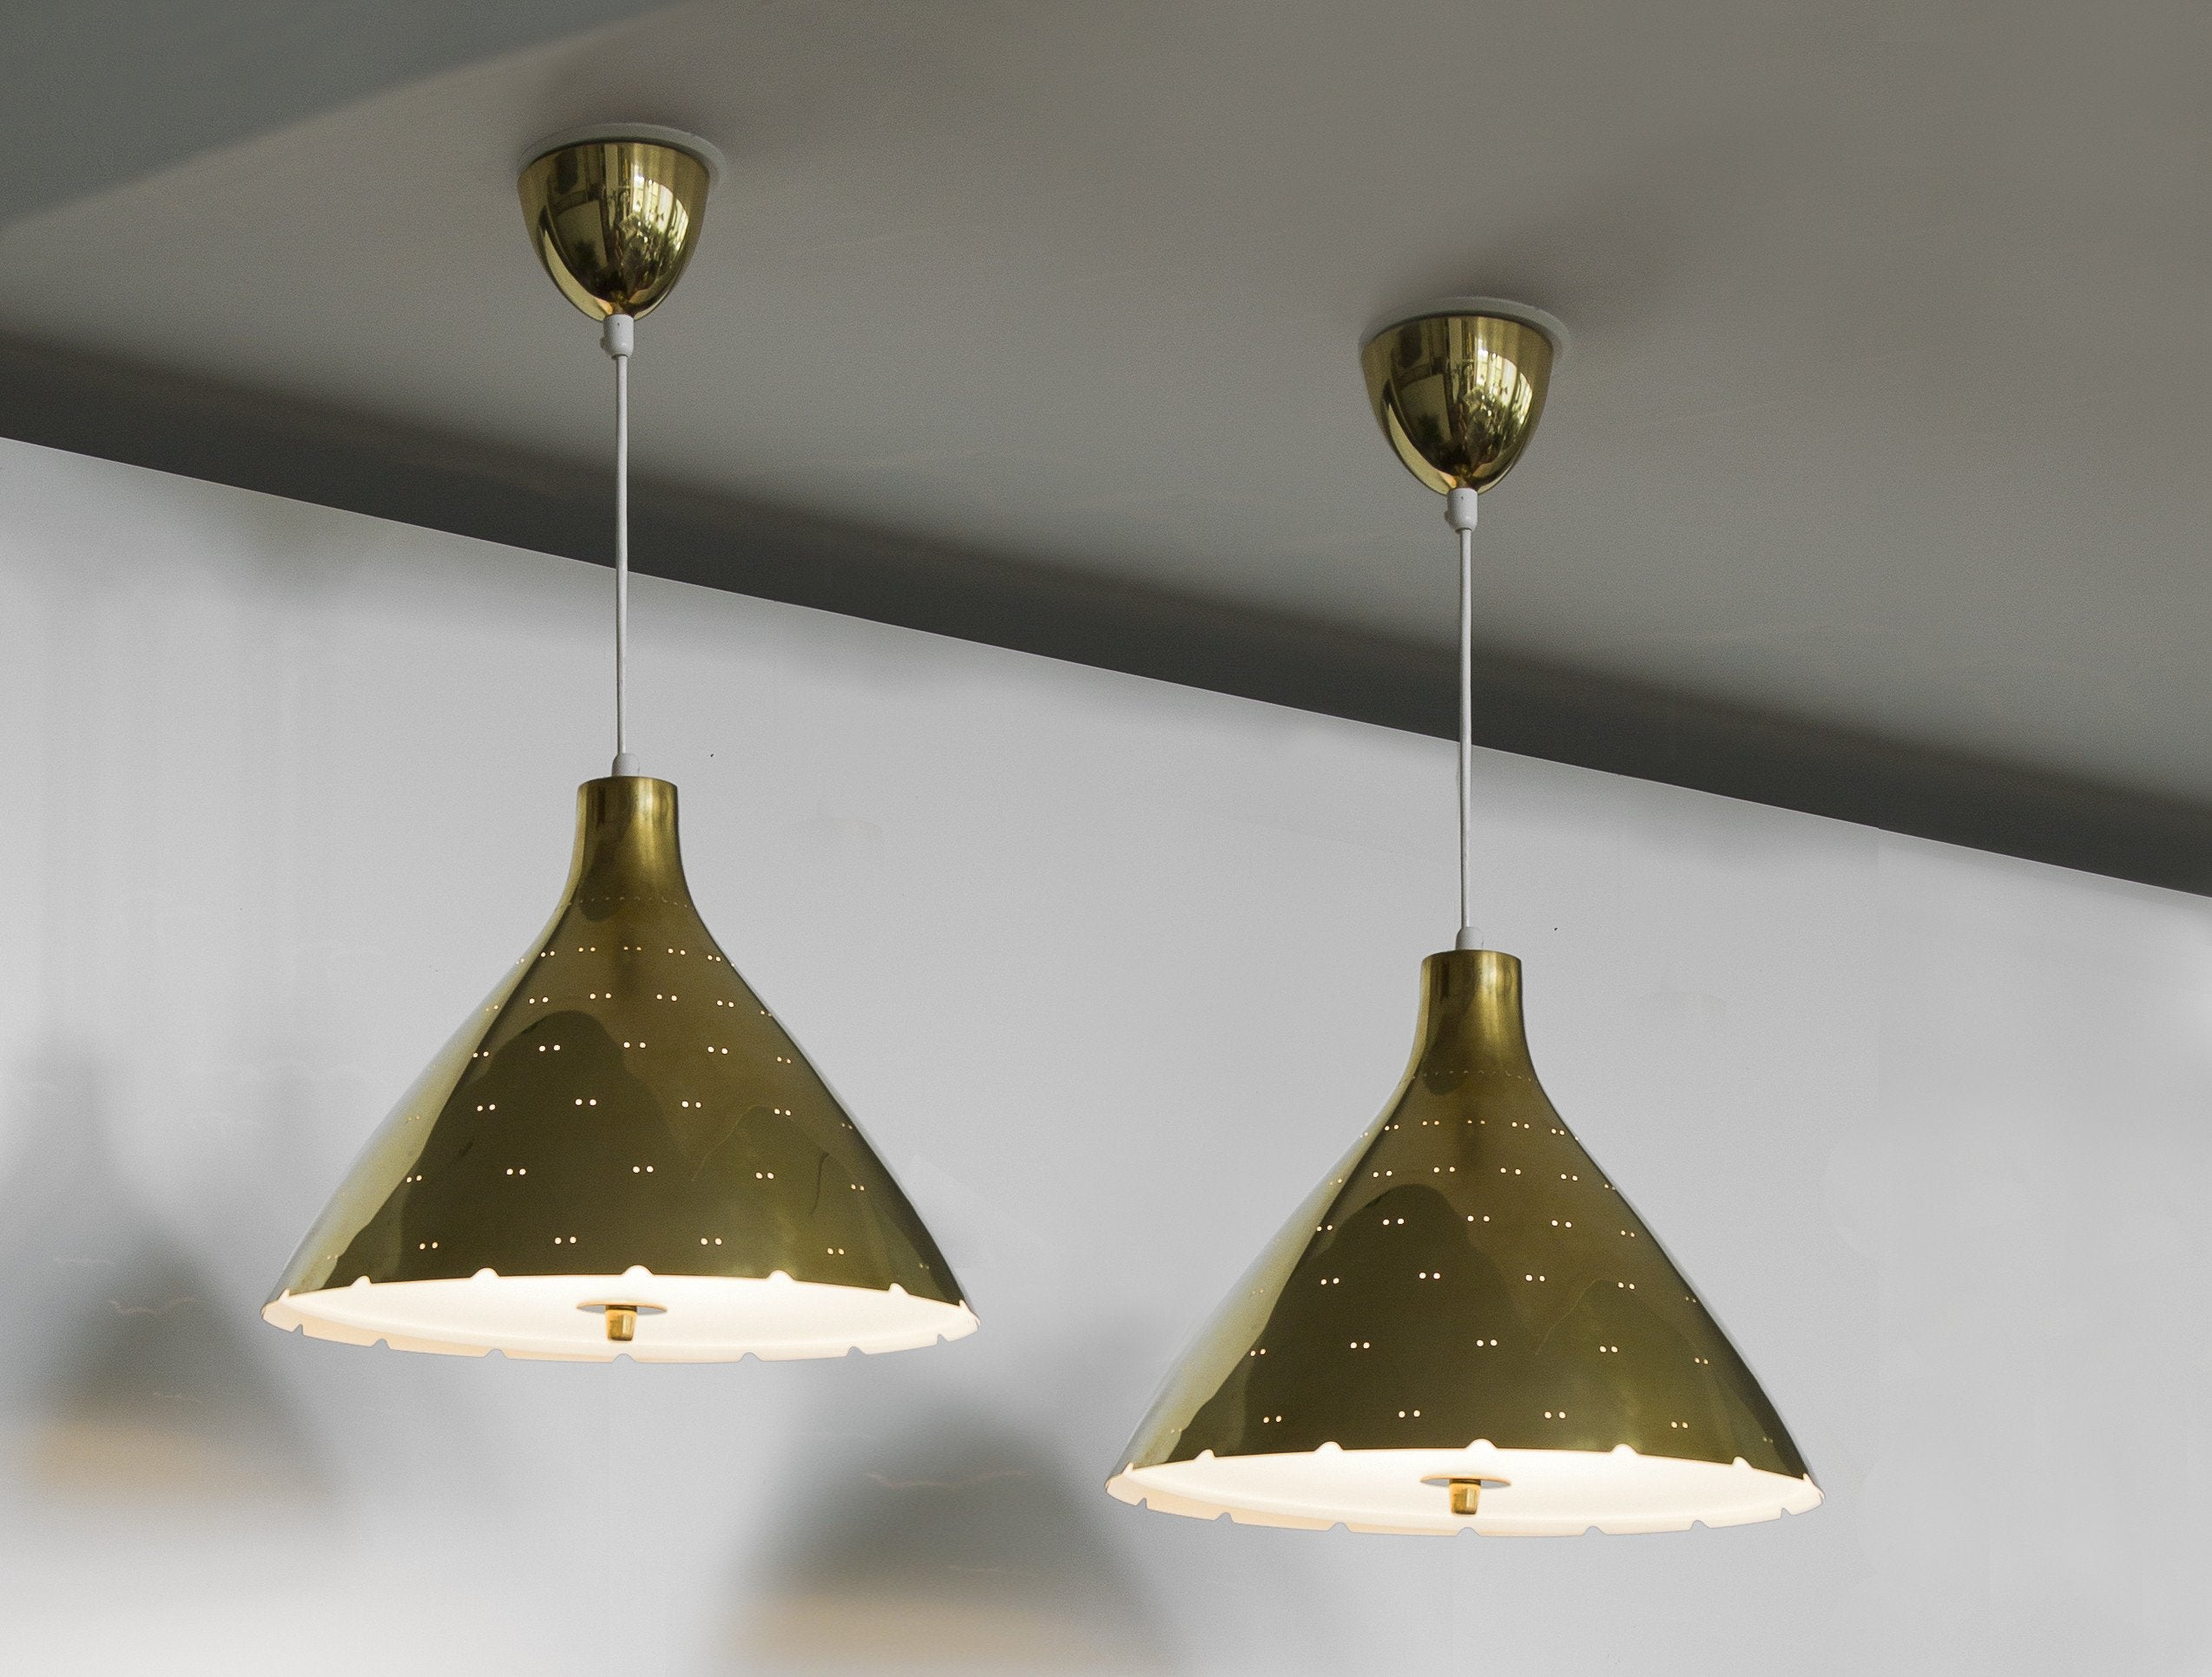 Pair of Paavo Tynell Ceiling Lamps, Taito Oy